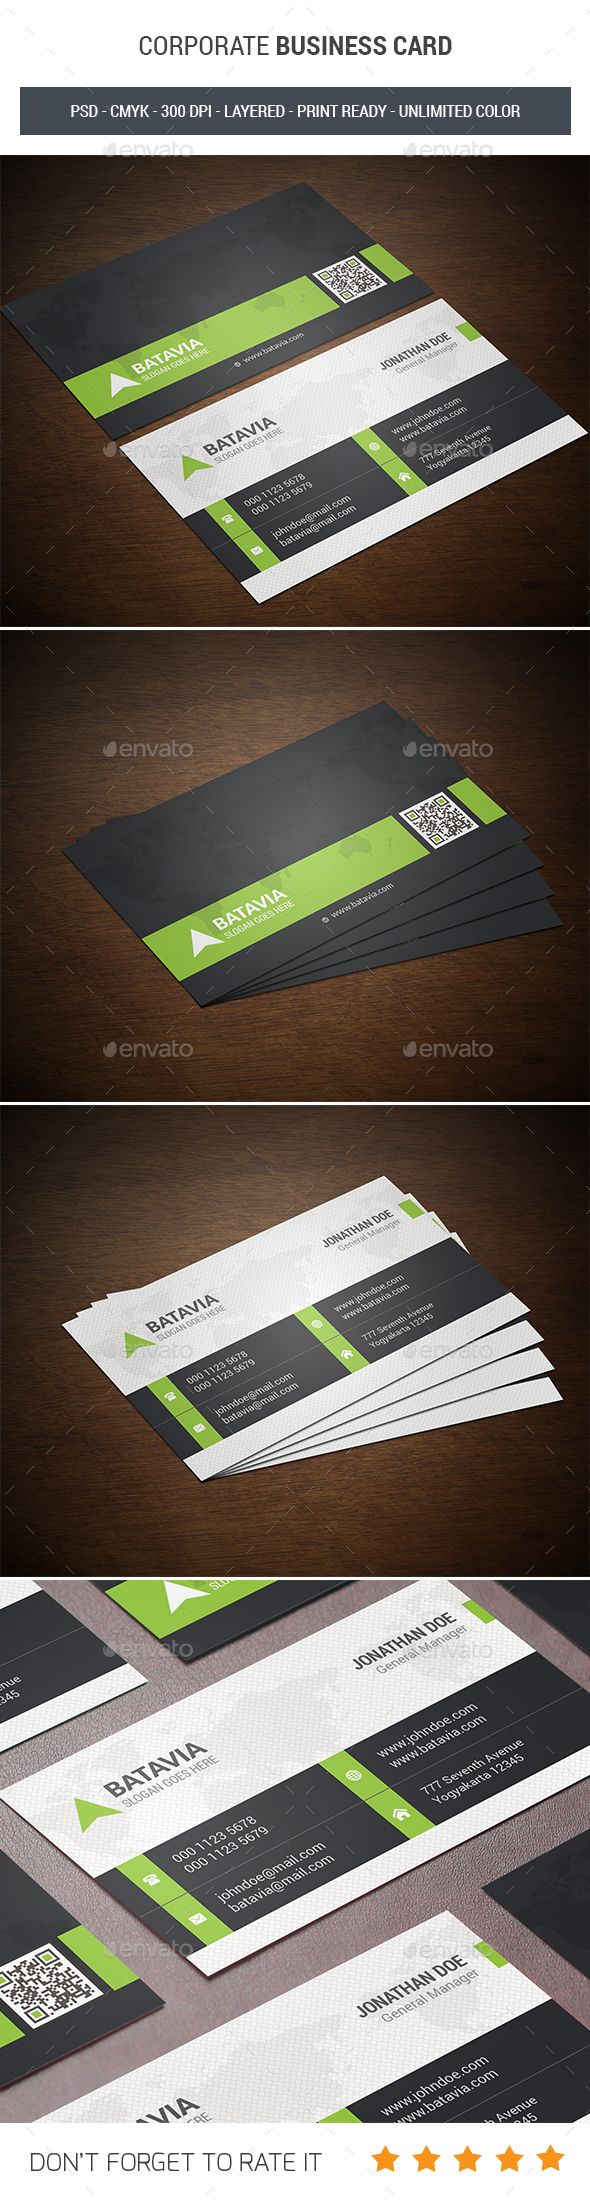 Corporate Business Card Template PSD #design Download: http://graphicriver.net/item/corporate-business-card/14237485?ref=ksioks